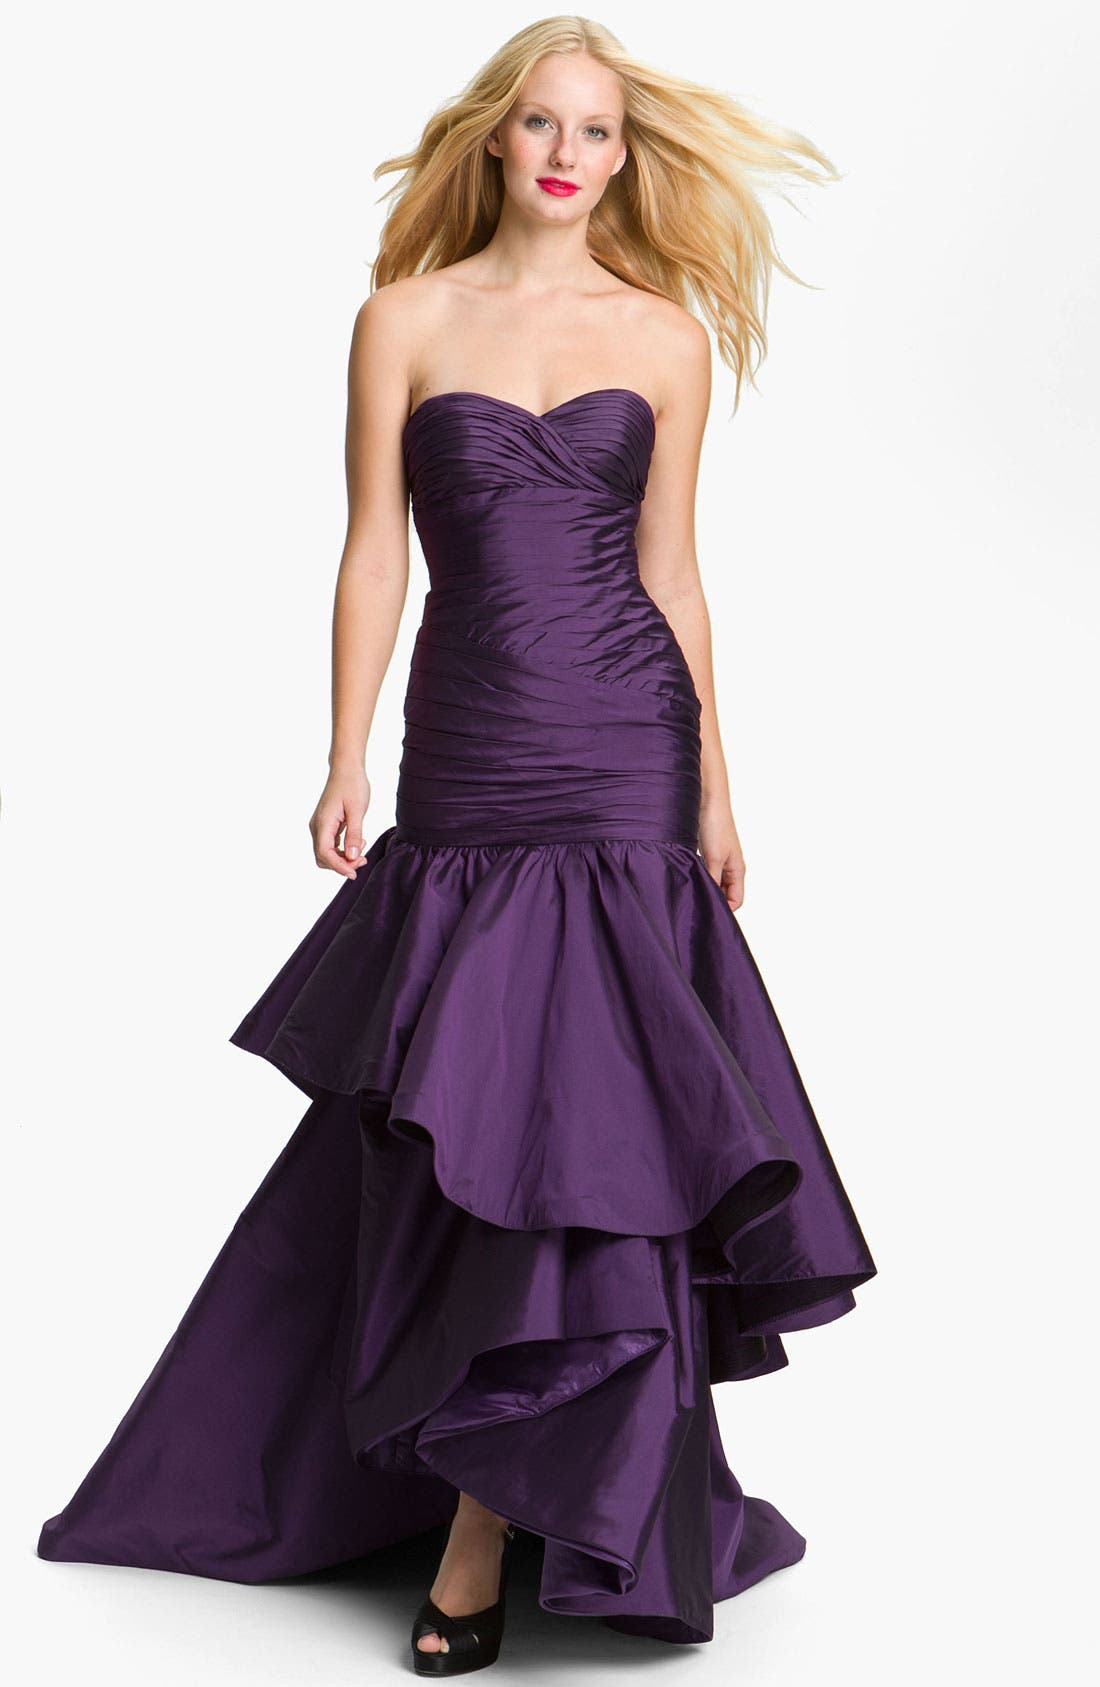 Main Image - ML Monique Lhuillier Strapless High/Low Taffeta Mermaid Gown